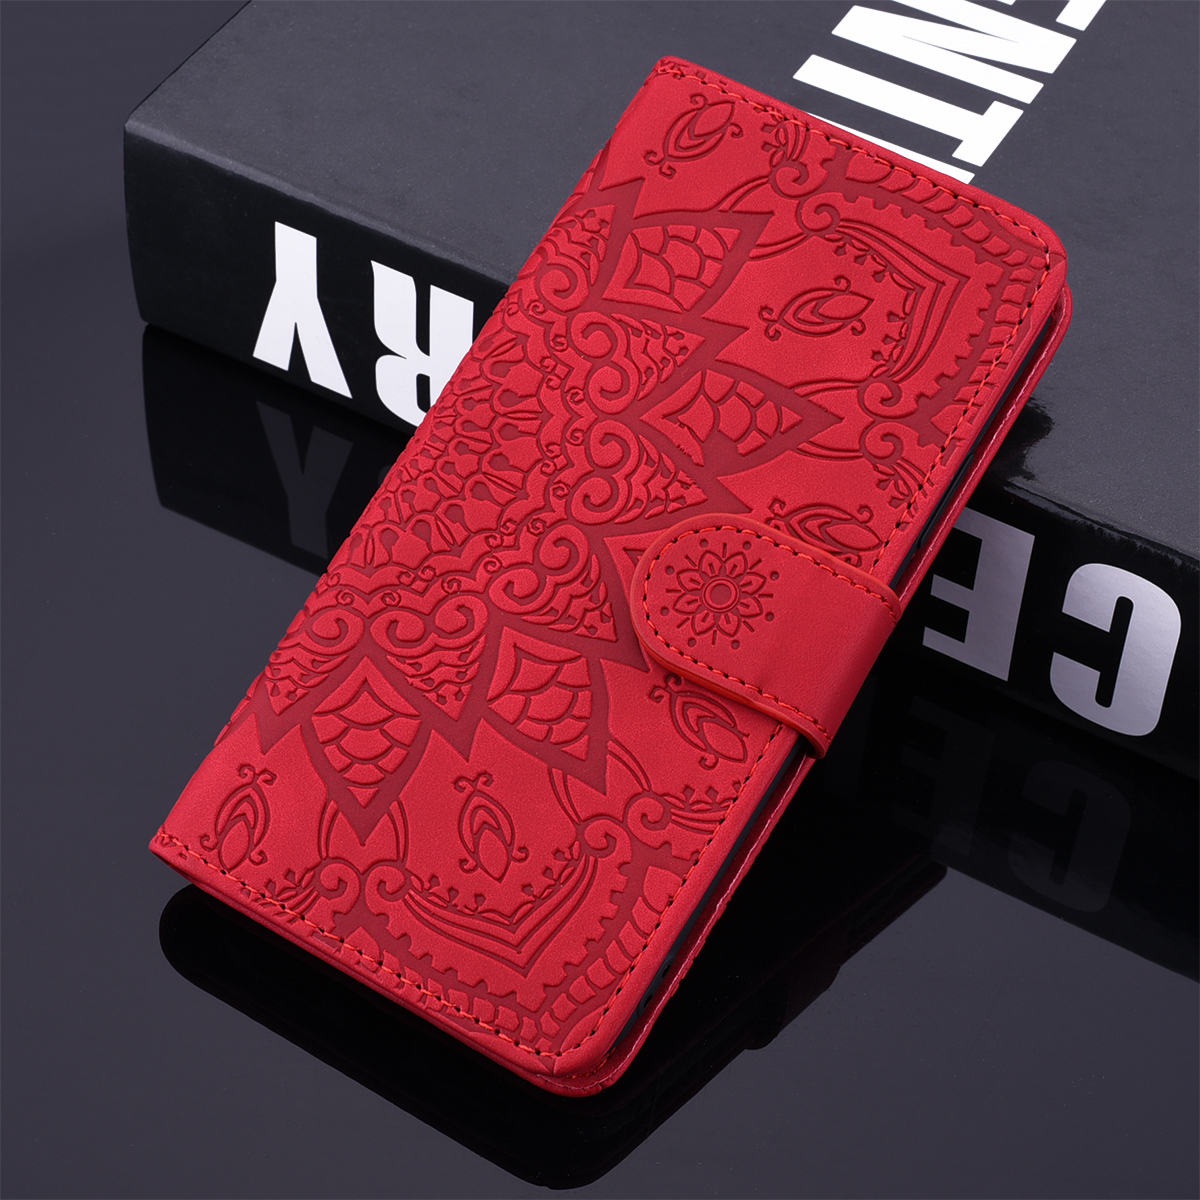 Scrub Datura Case For iPhone 11 Pro 7 8 6 6s Plus X XS Max XR Flip Leather 3D Embossed Book Case For iPhone11 5 5S SE 2020 8Plus(China)